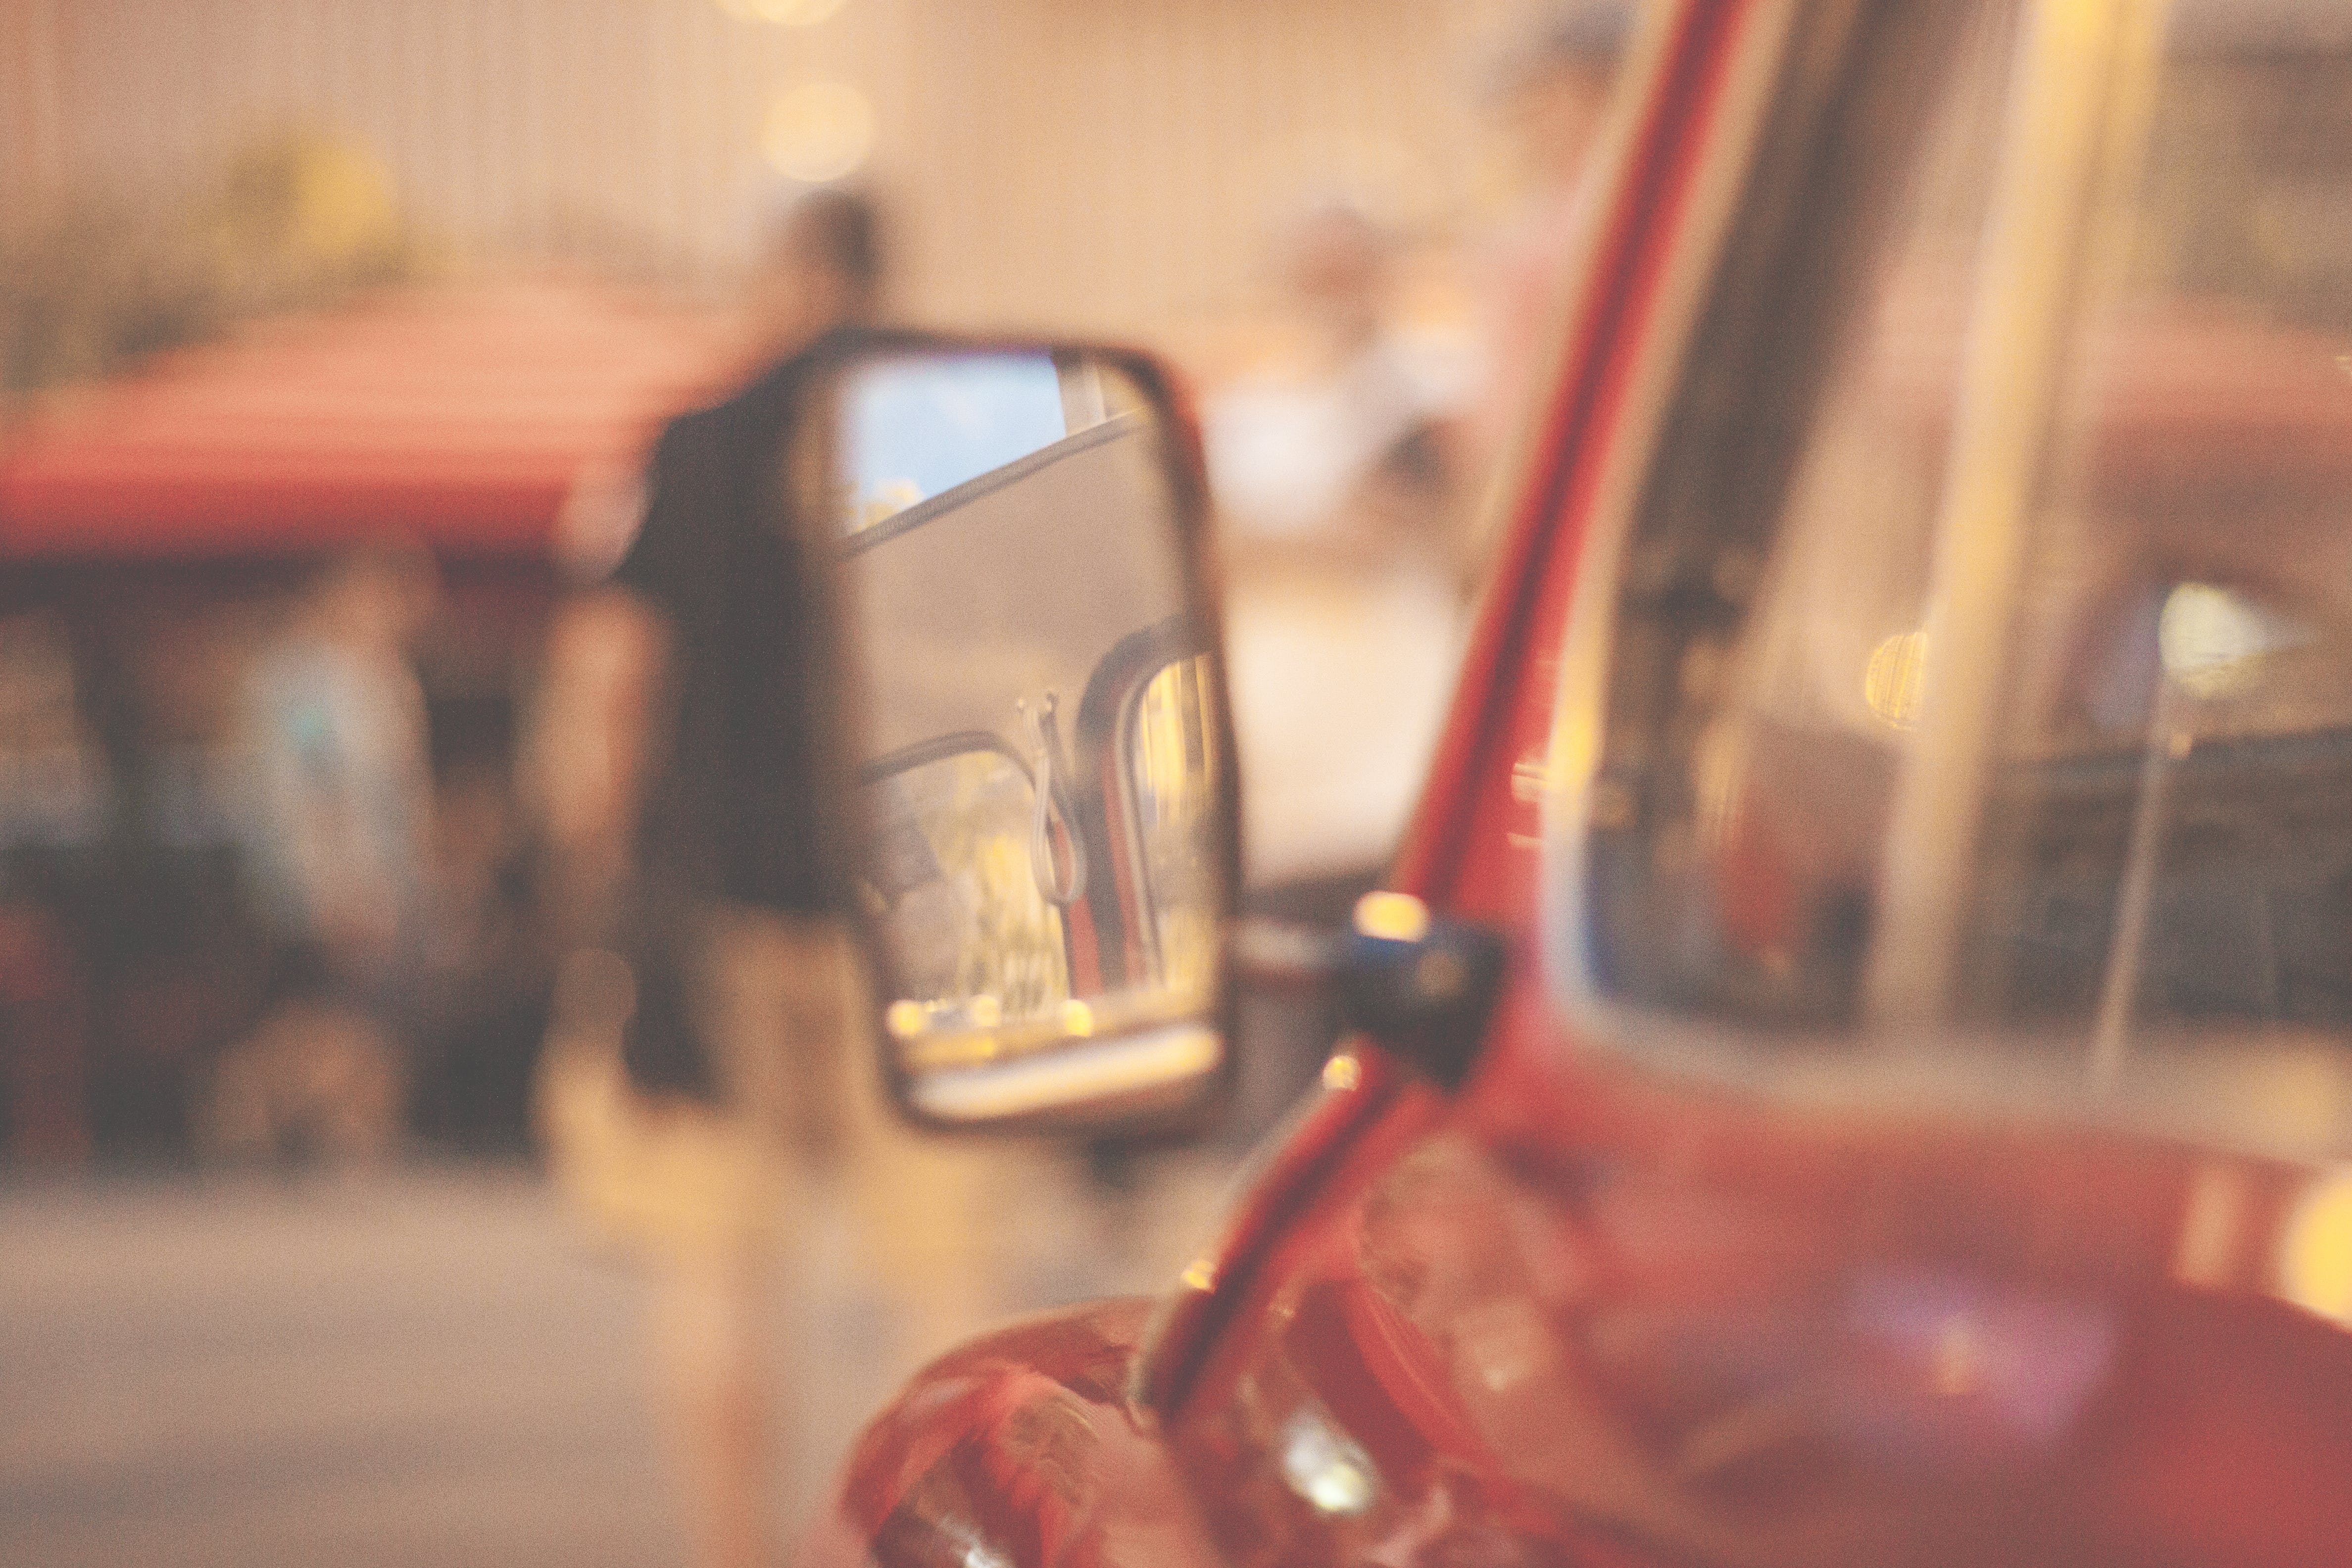 Free stock photo of car, Fiat, mirror, old car